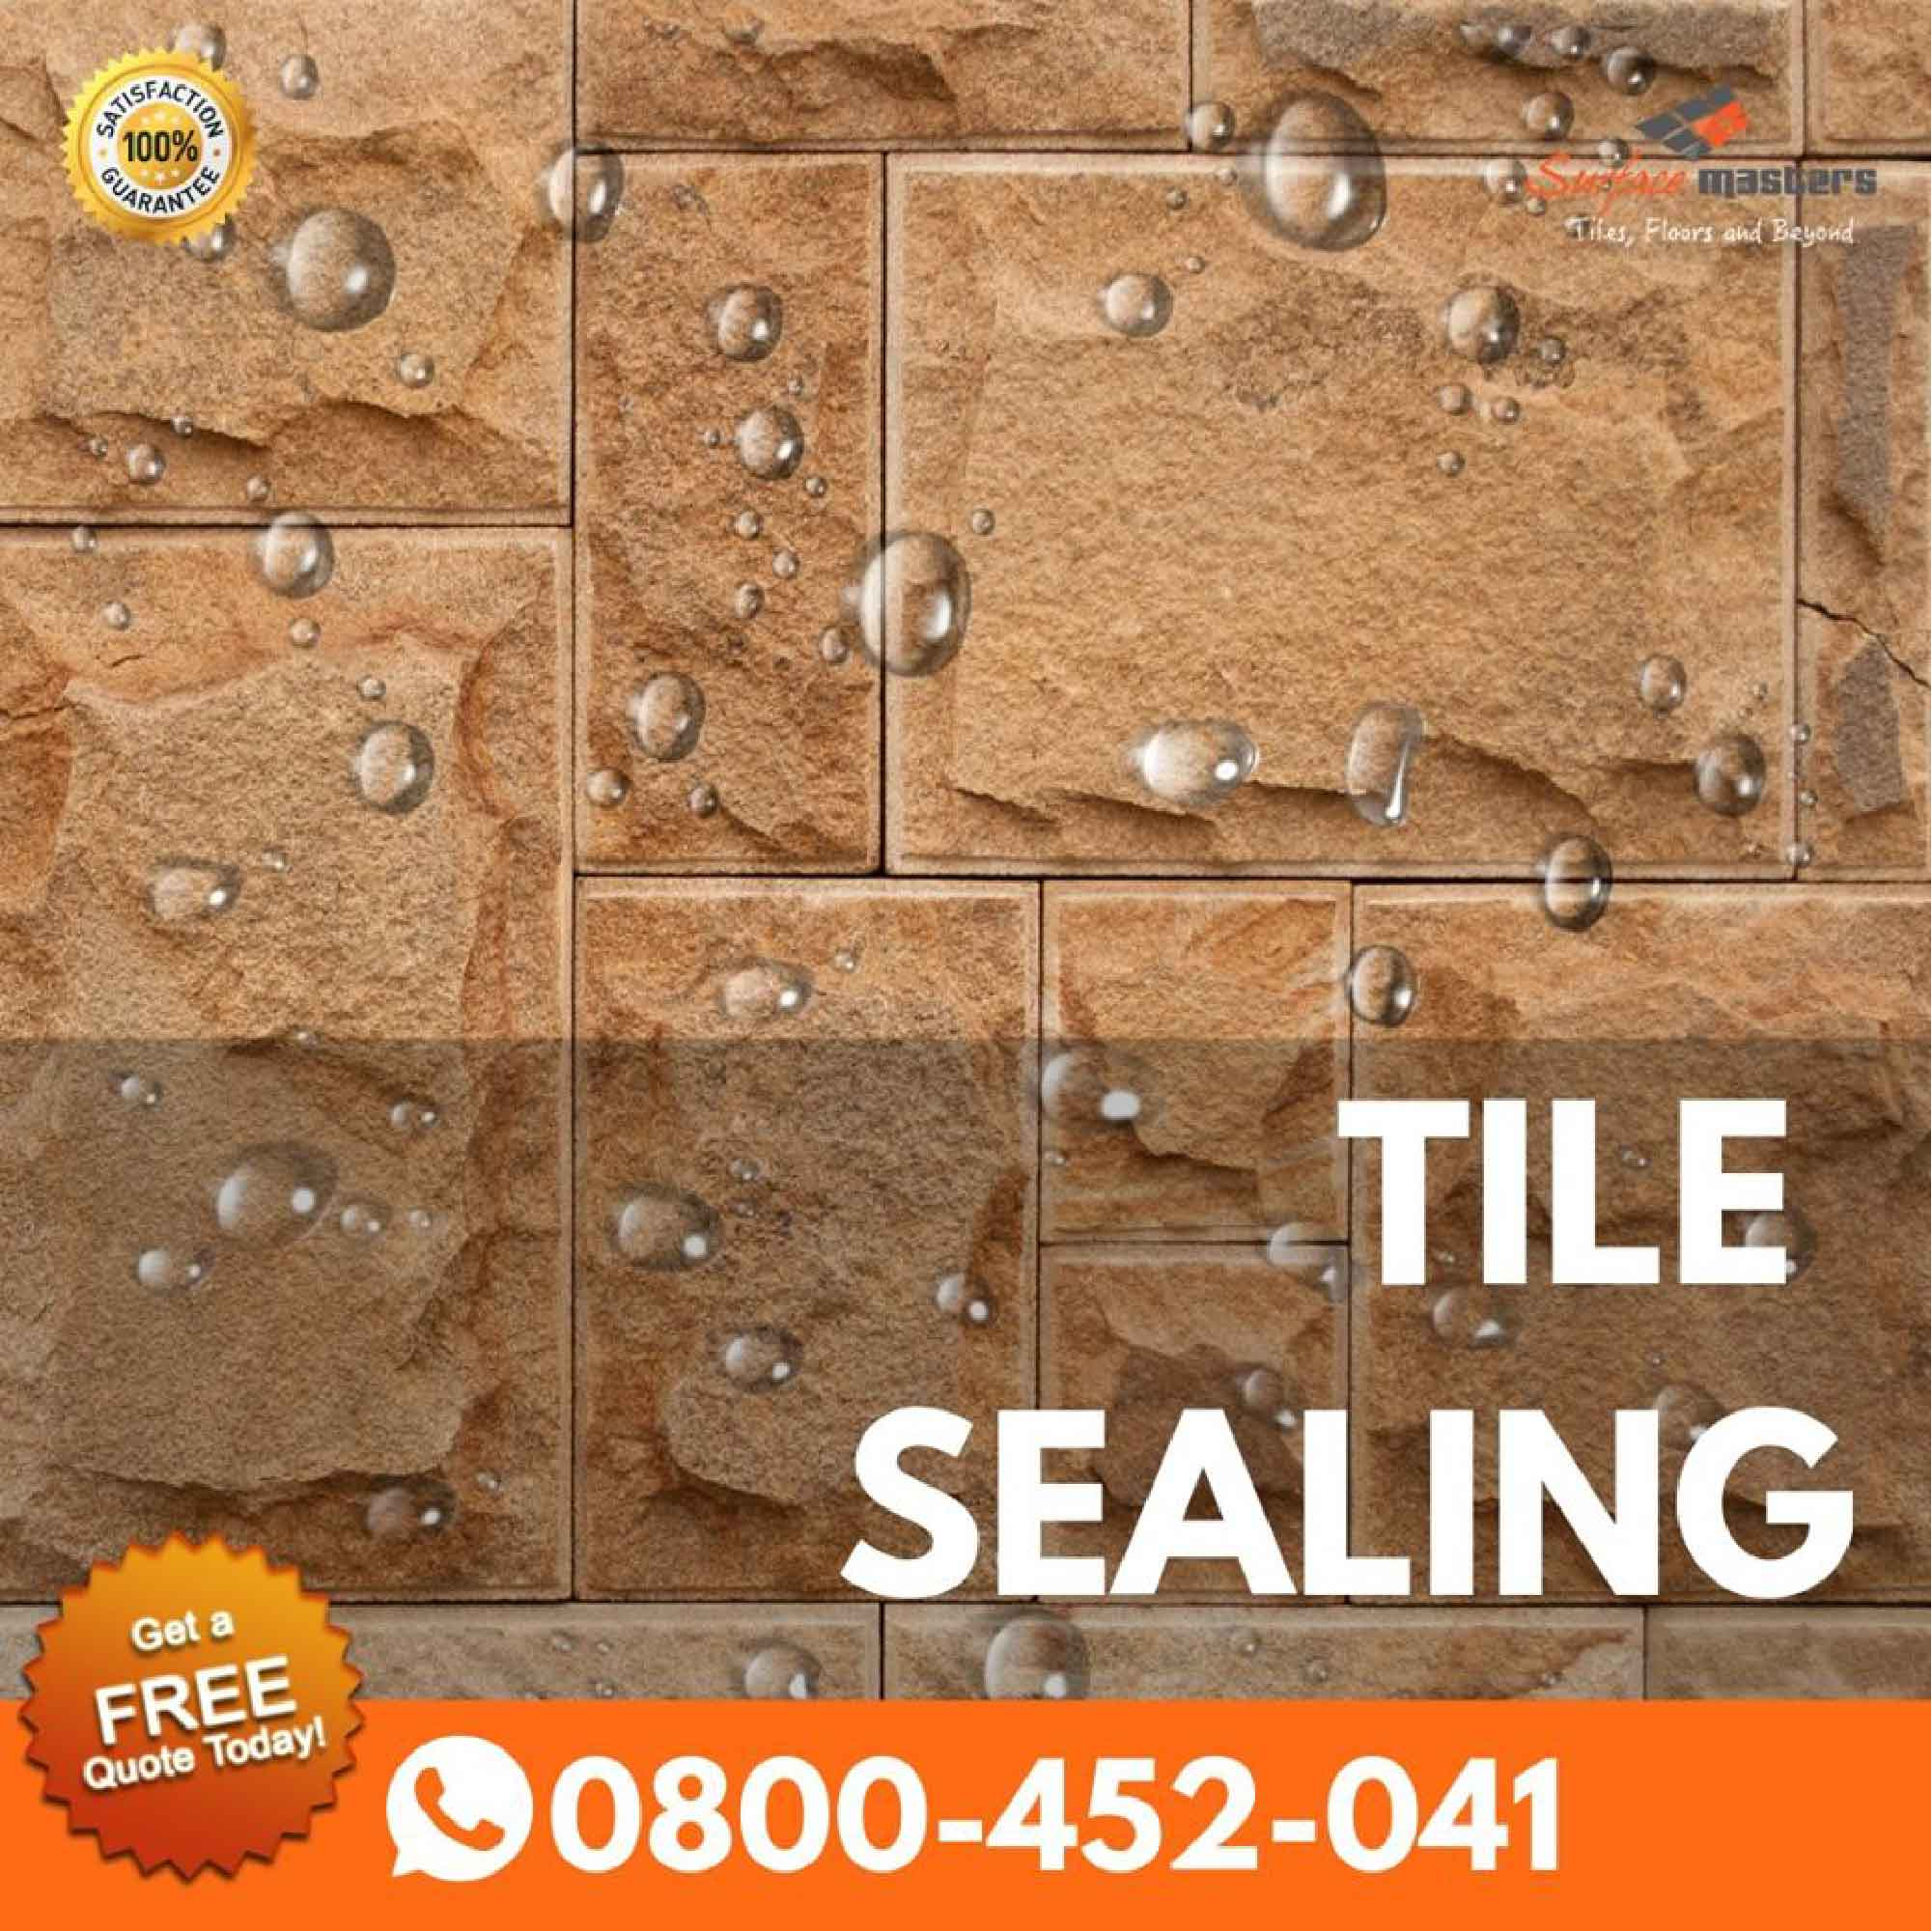 Tile sealing image with water drops on tiles